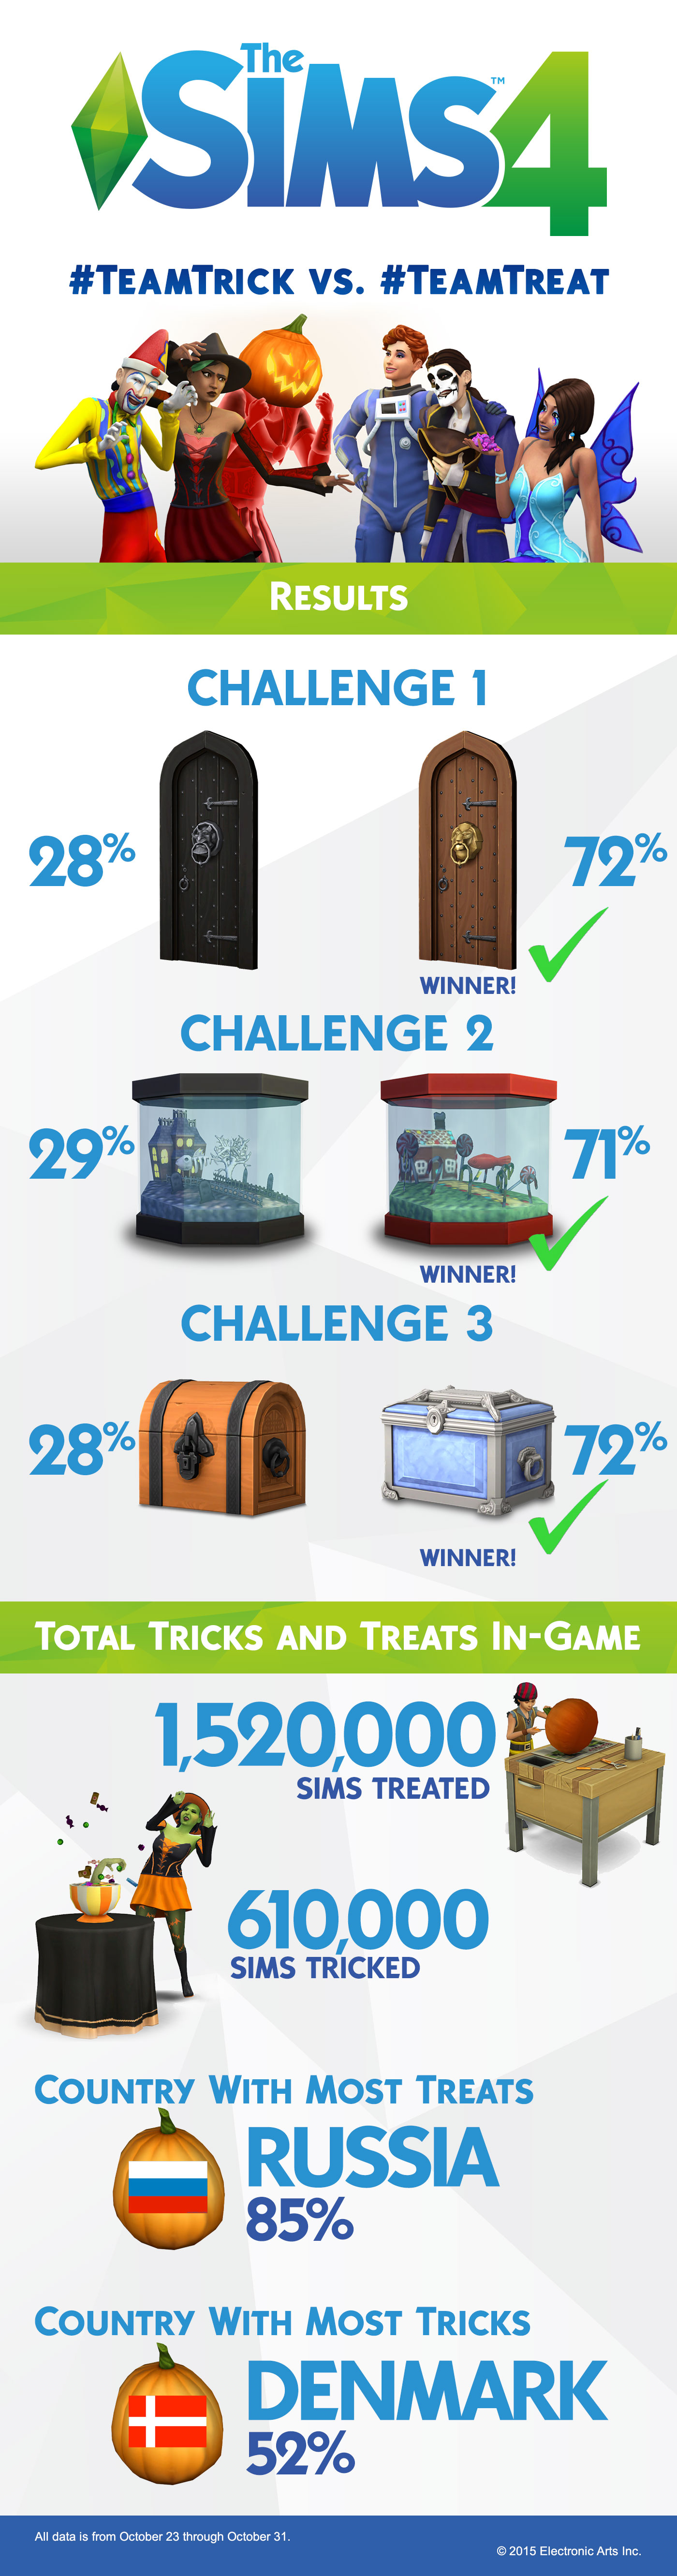 TS4_EN_Halloween_Infographic_Final_R5